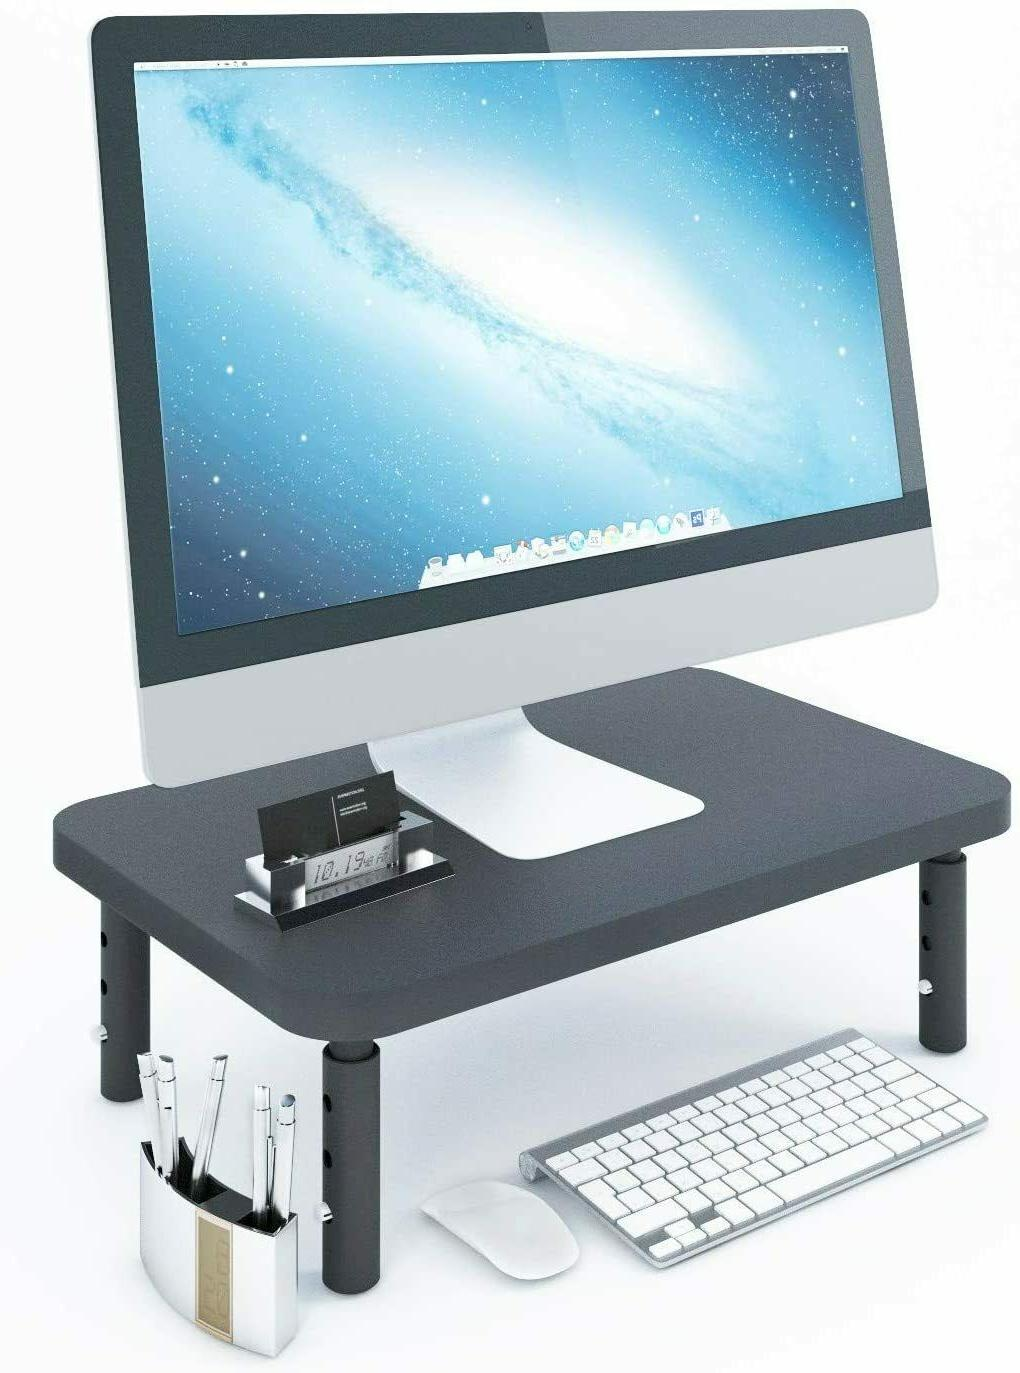 Sturdy Stylish Height Monitor for Desk